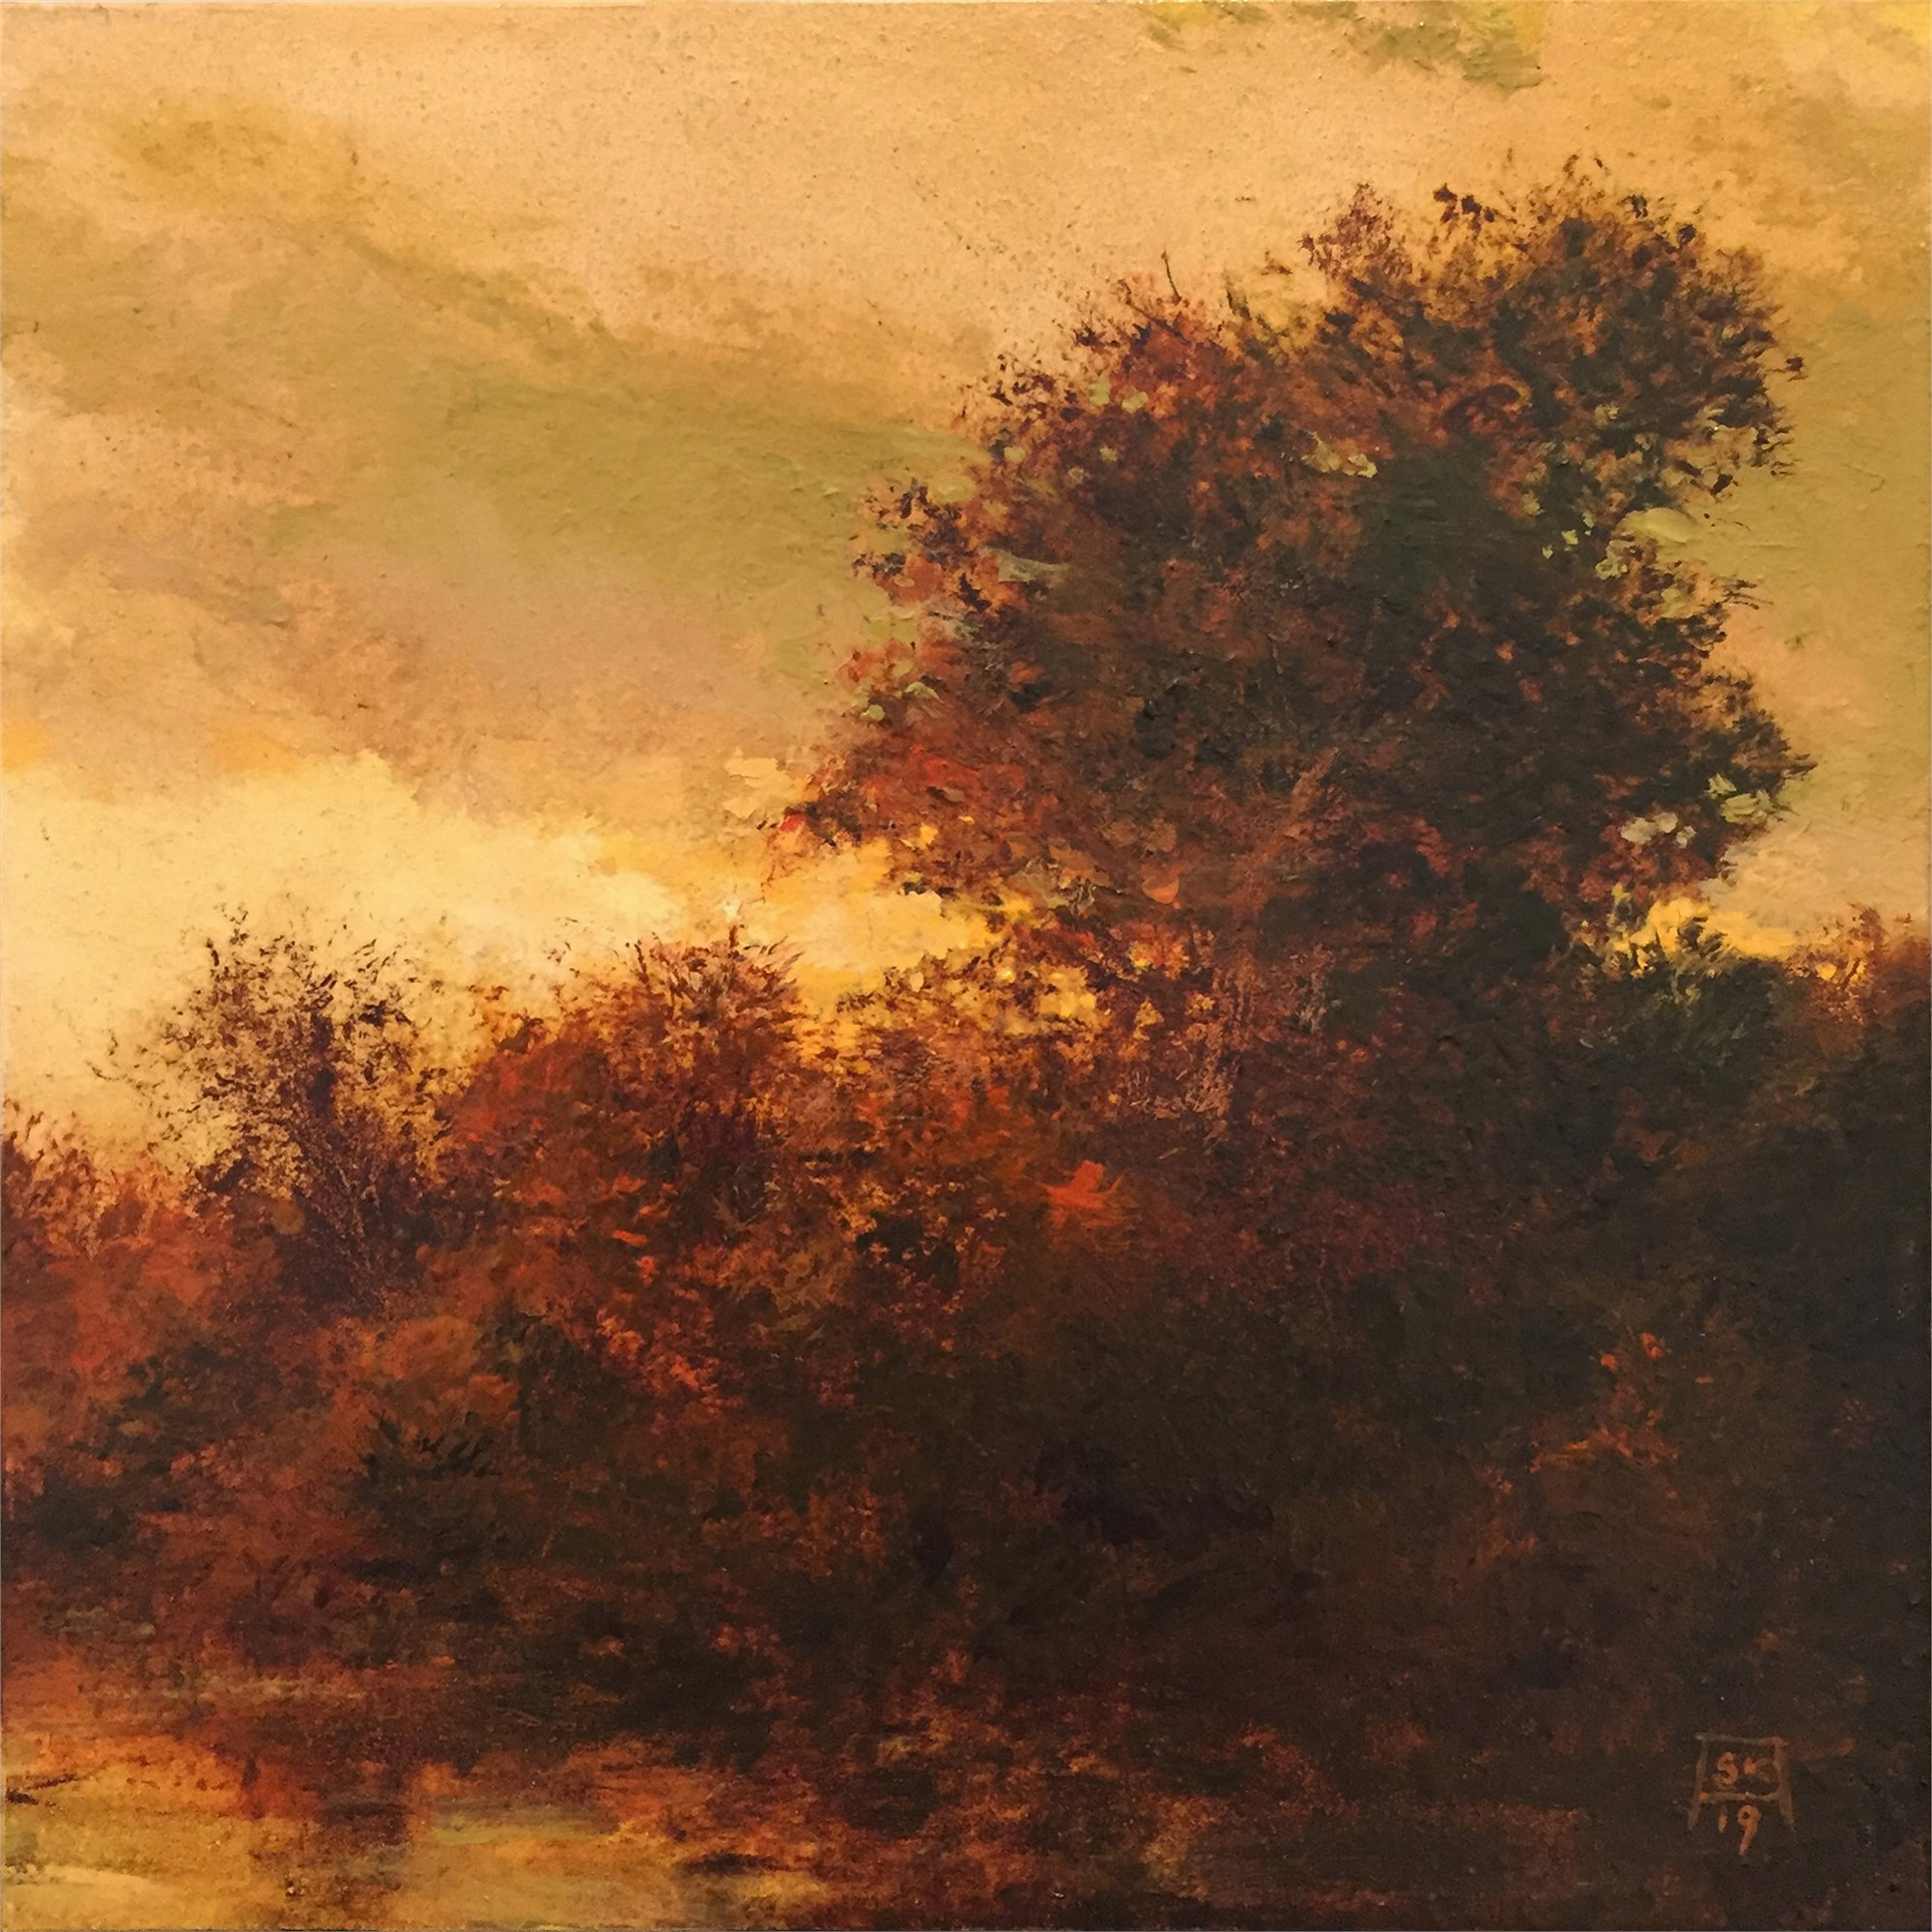 Evening (Ode to F. W. Kost) by Shawn Krueger